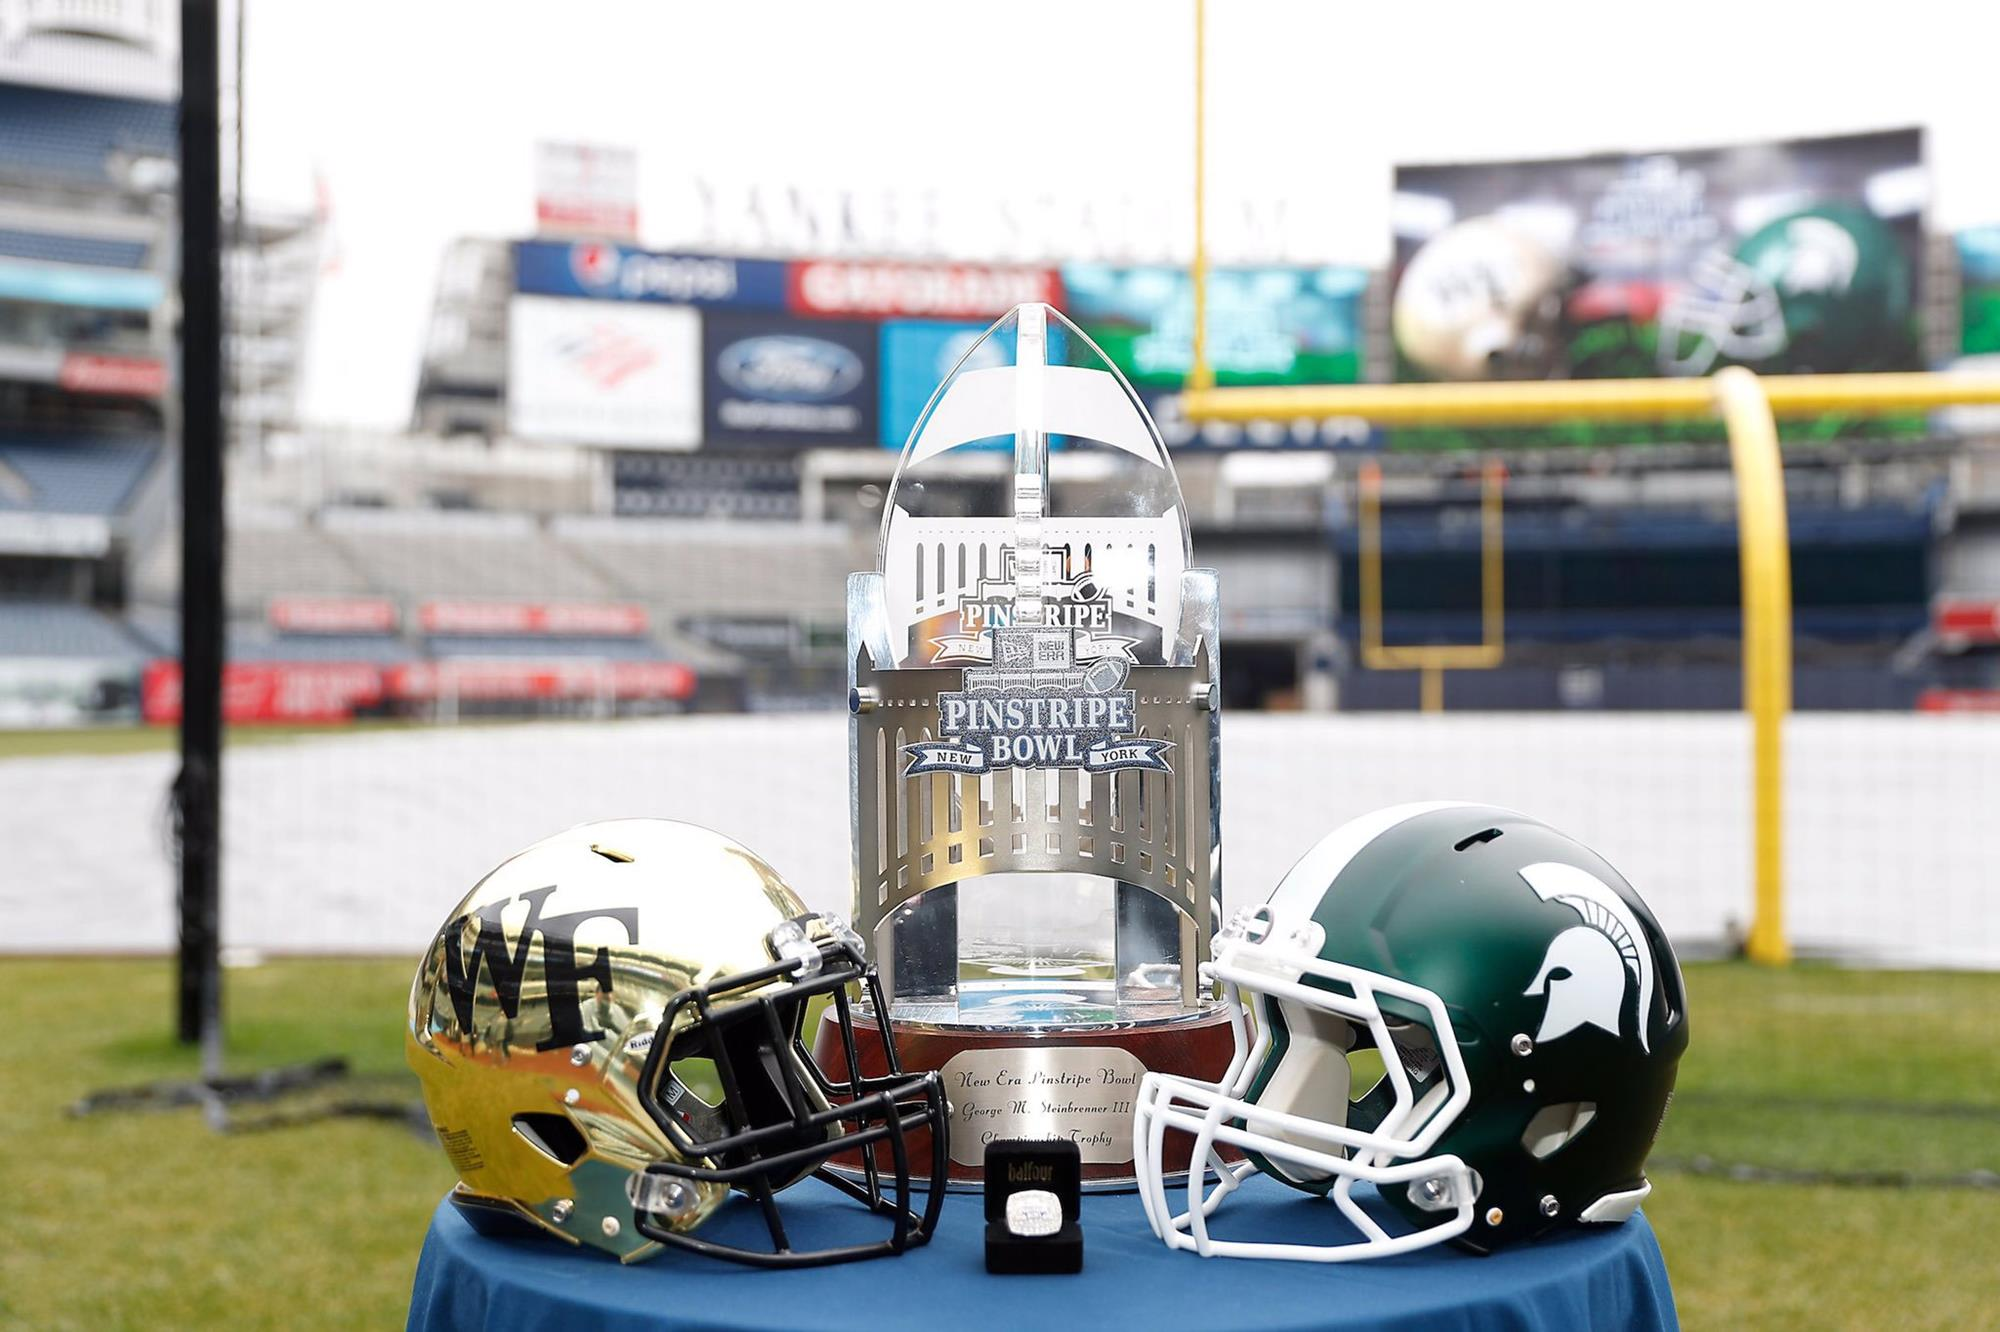 Michigan State Spartans Football Brain Hoyer Champs Sports Bowl 2007 Photo Print